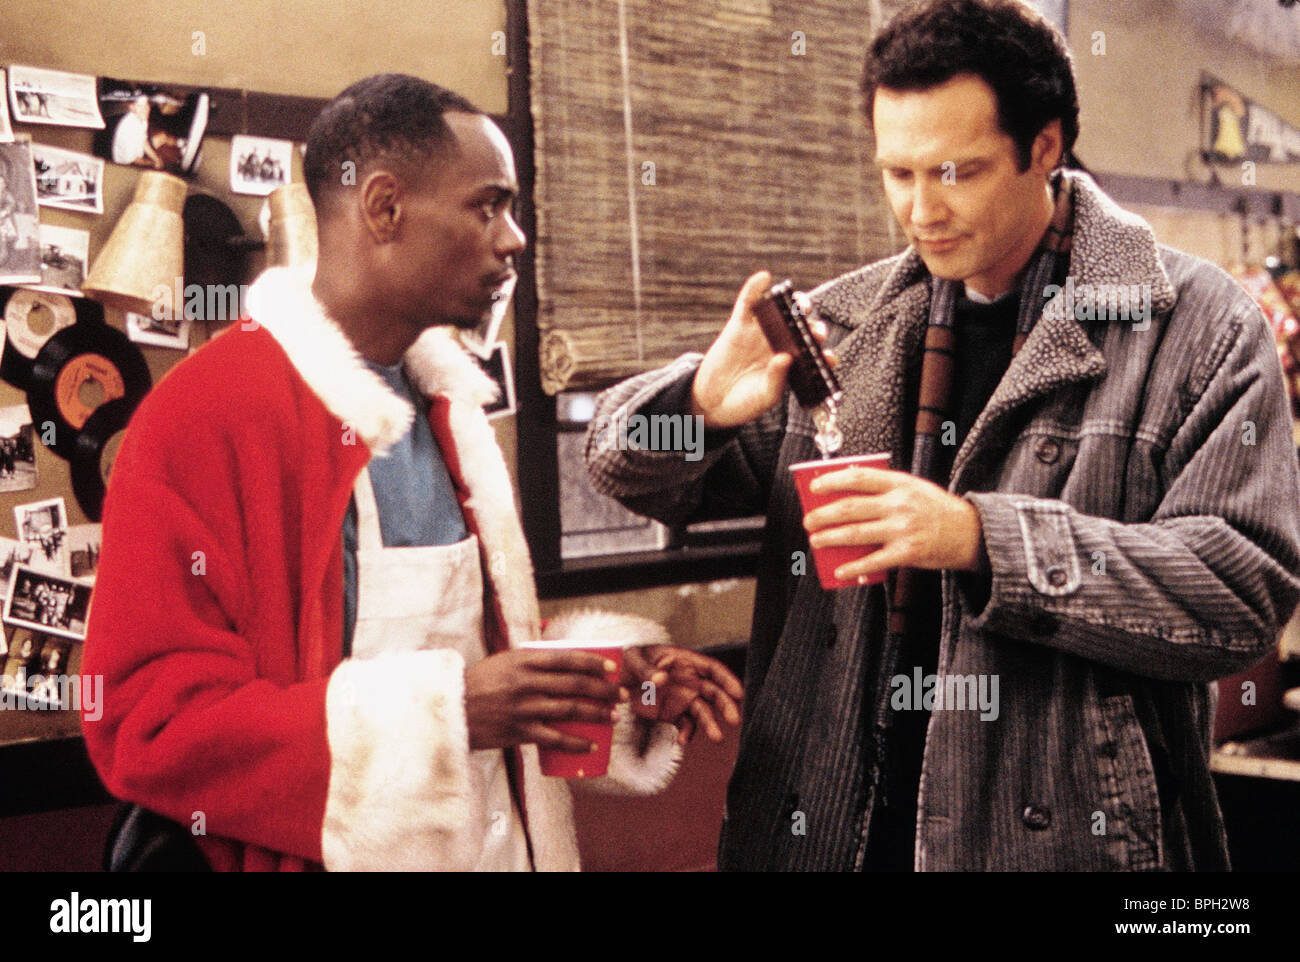 DAVE CHAPPELLE & NORM MACDONALD SCREWED (2000) - Stock Image